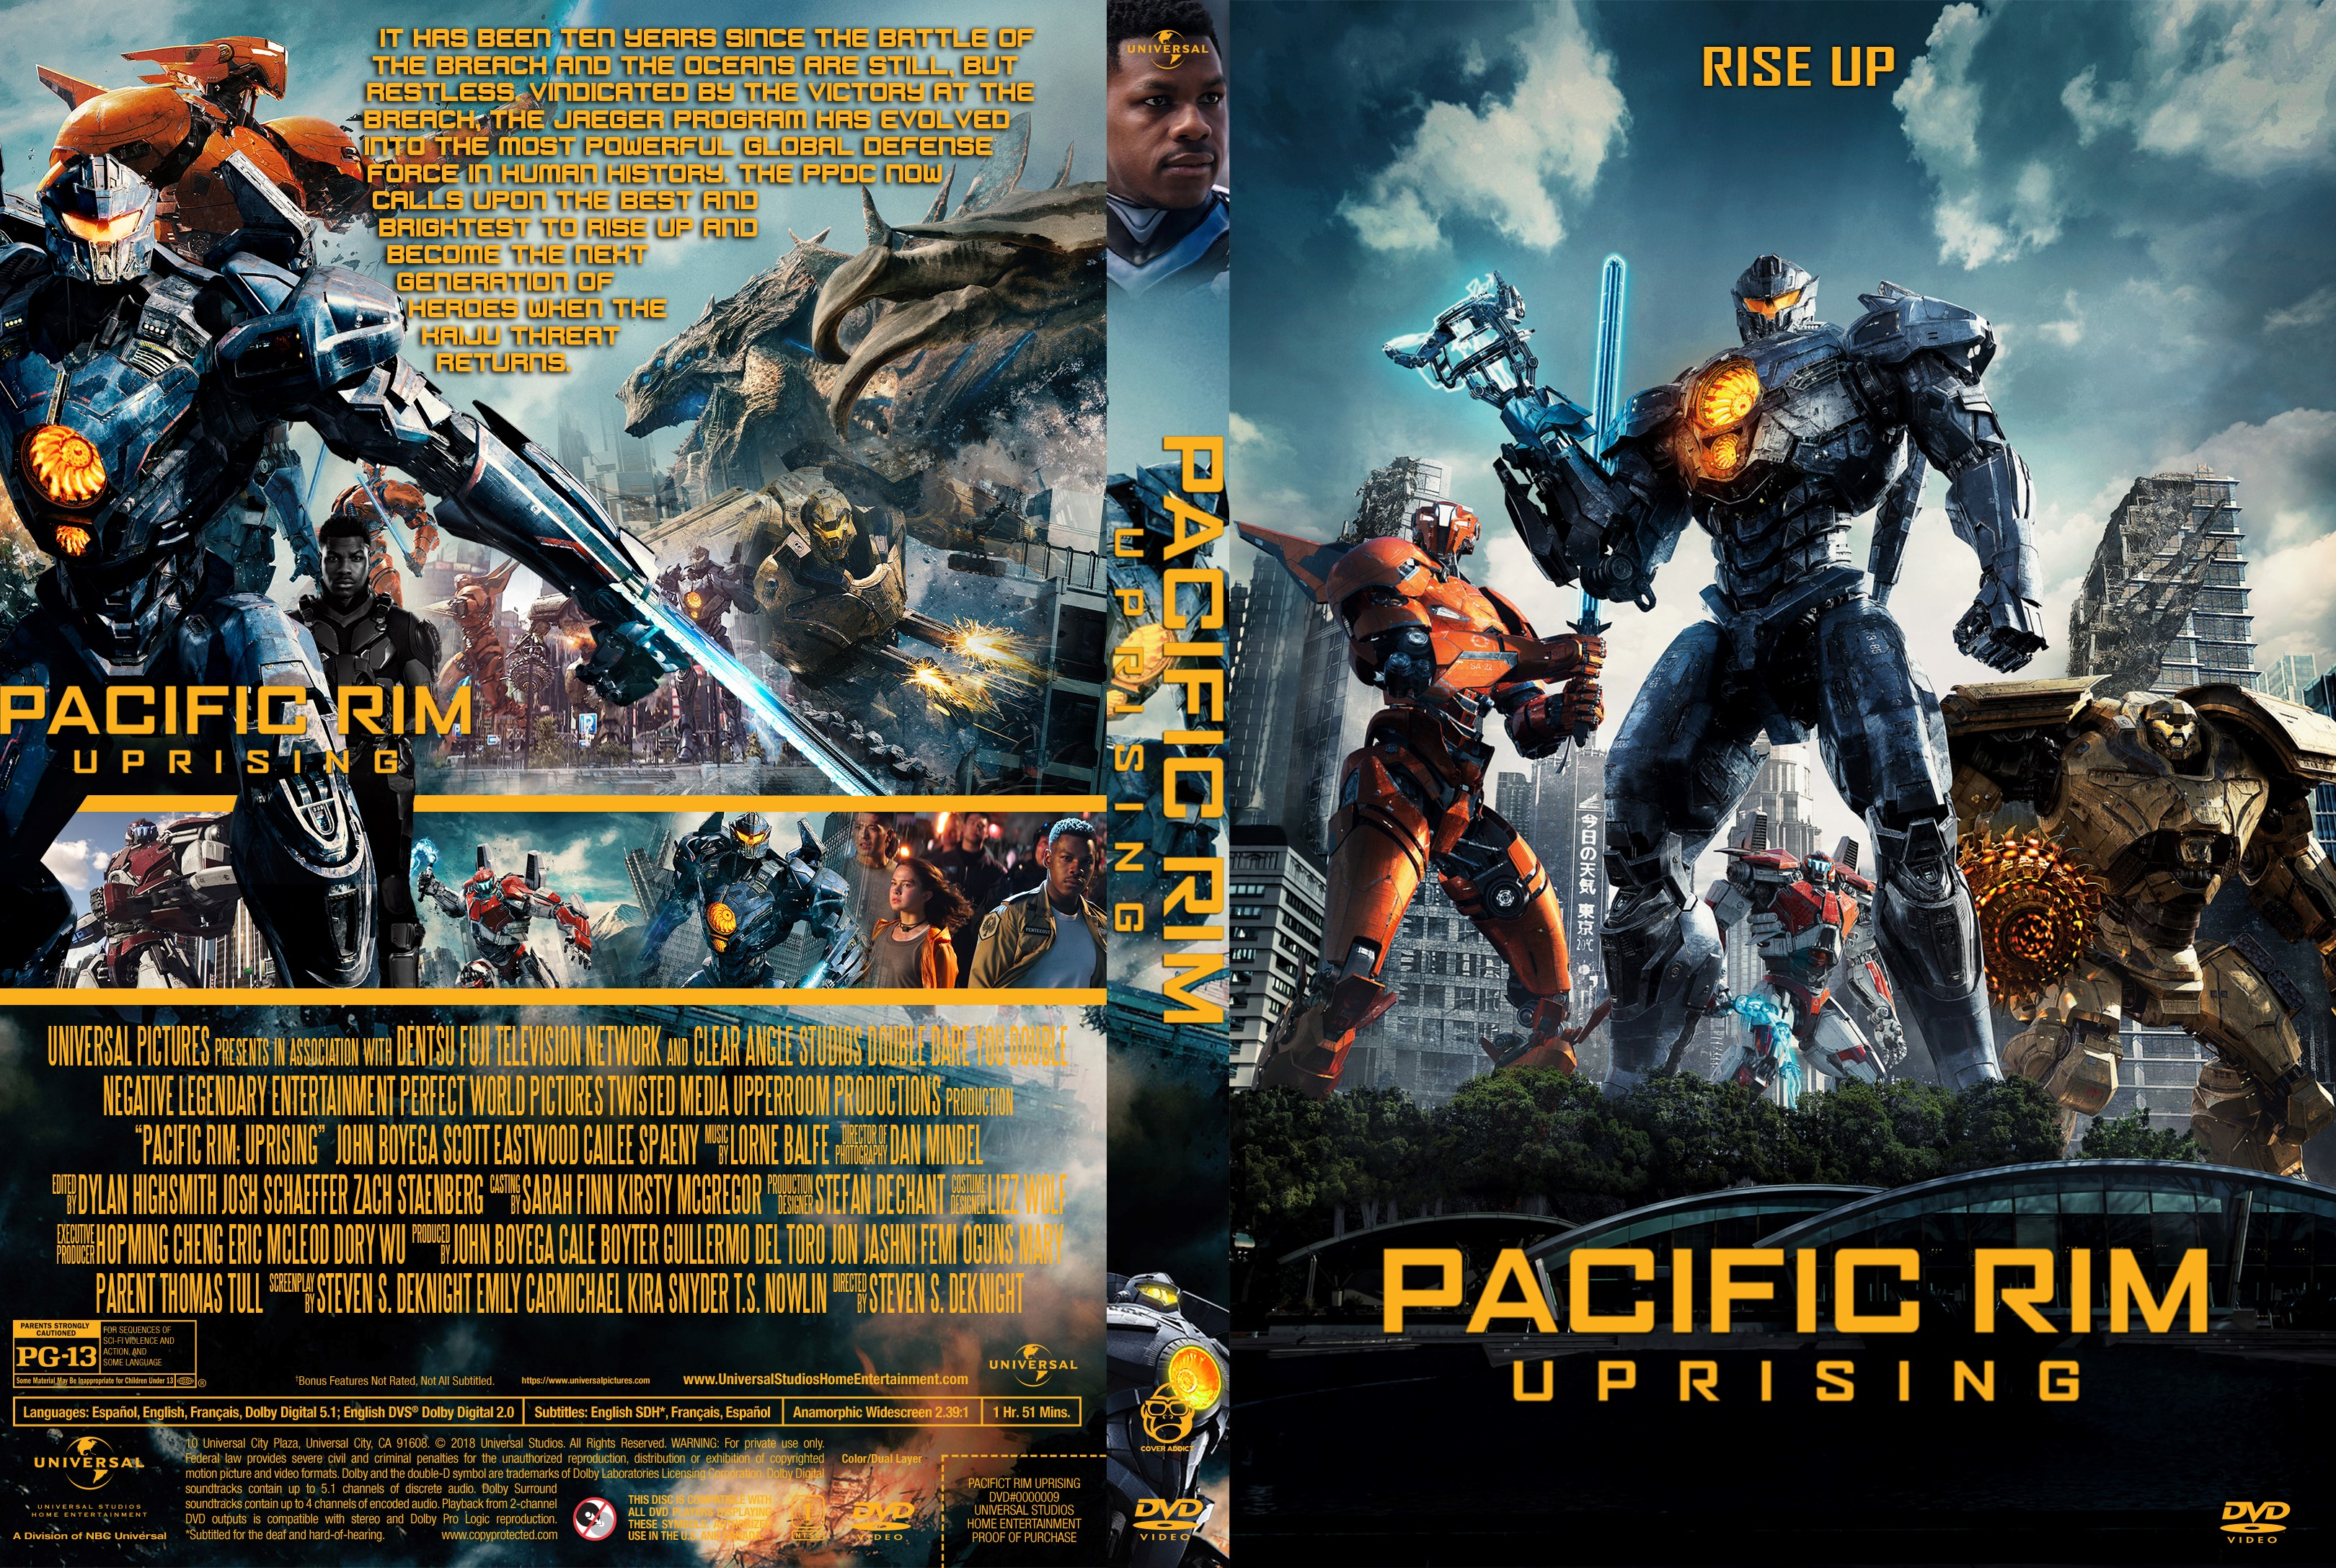 Pacific Rim Uprising DVD Cover - Cover Addict - Freecovers Pacific Rim Cover